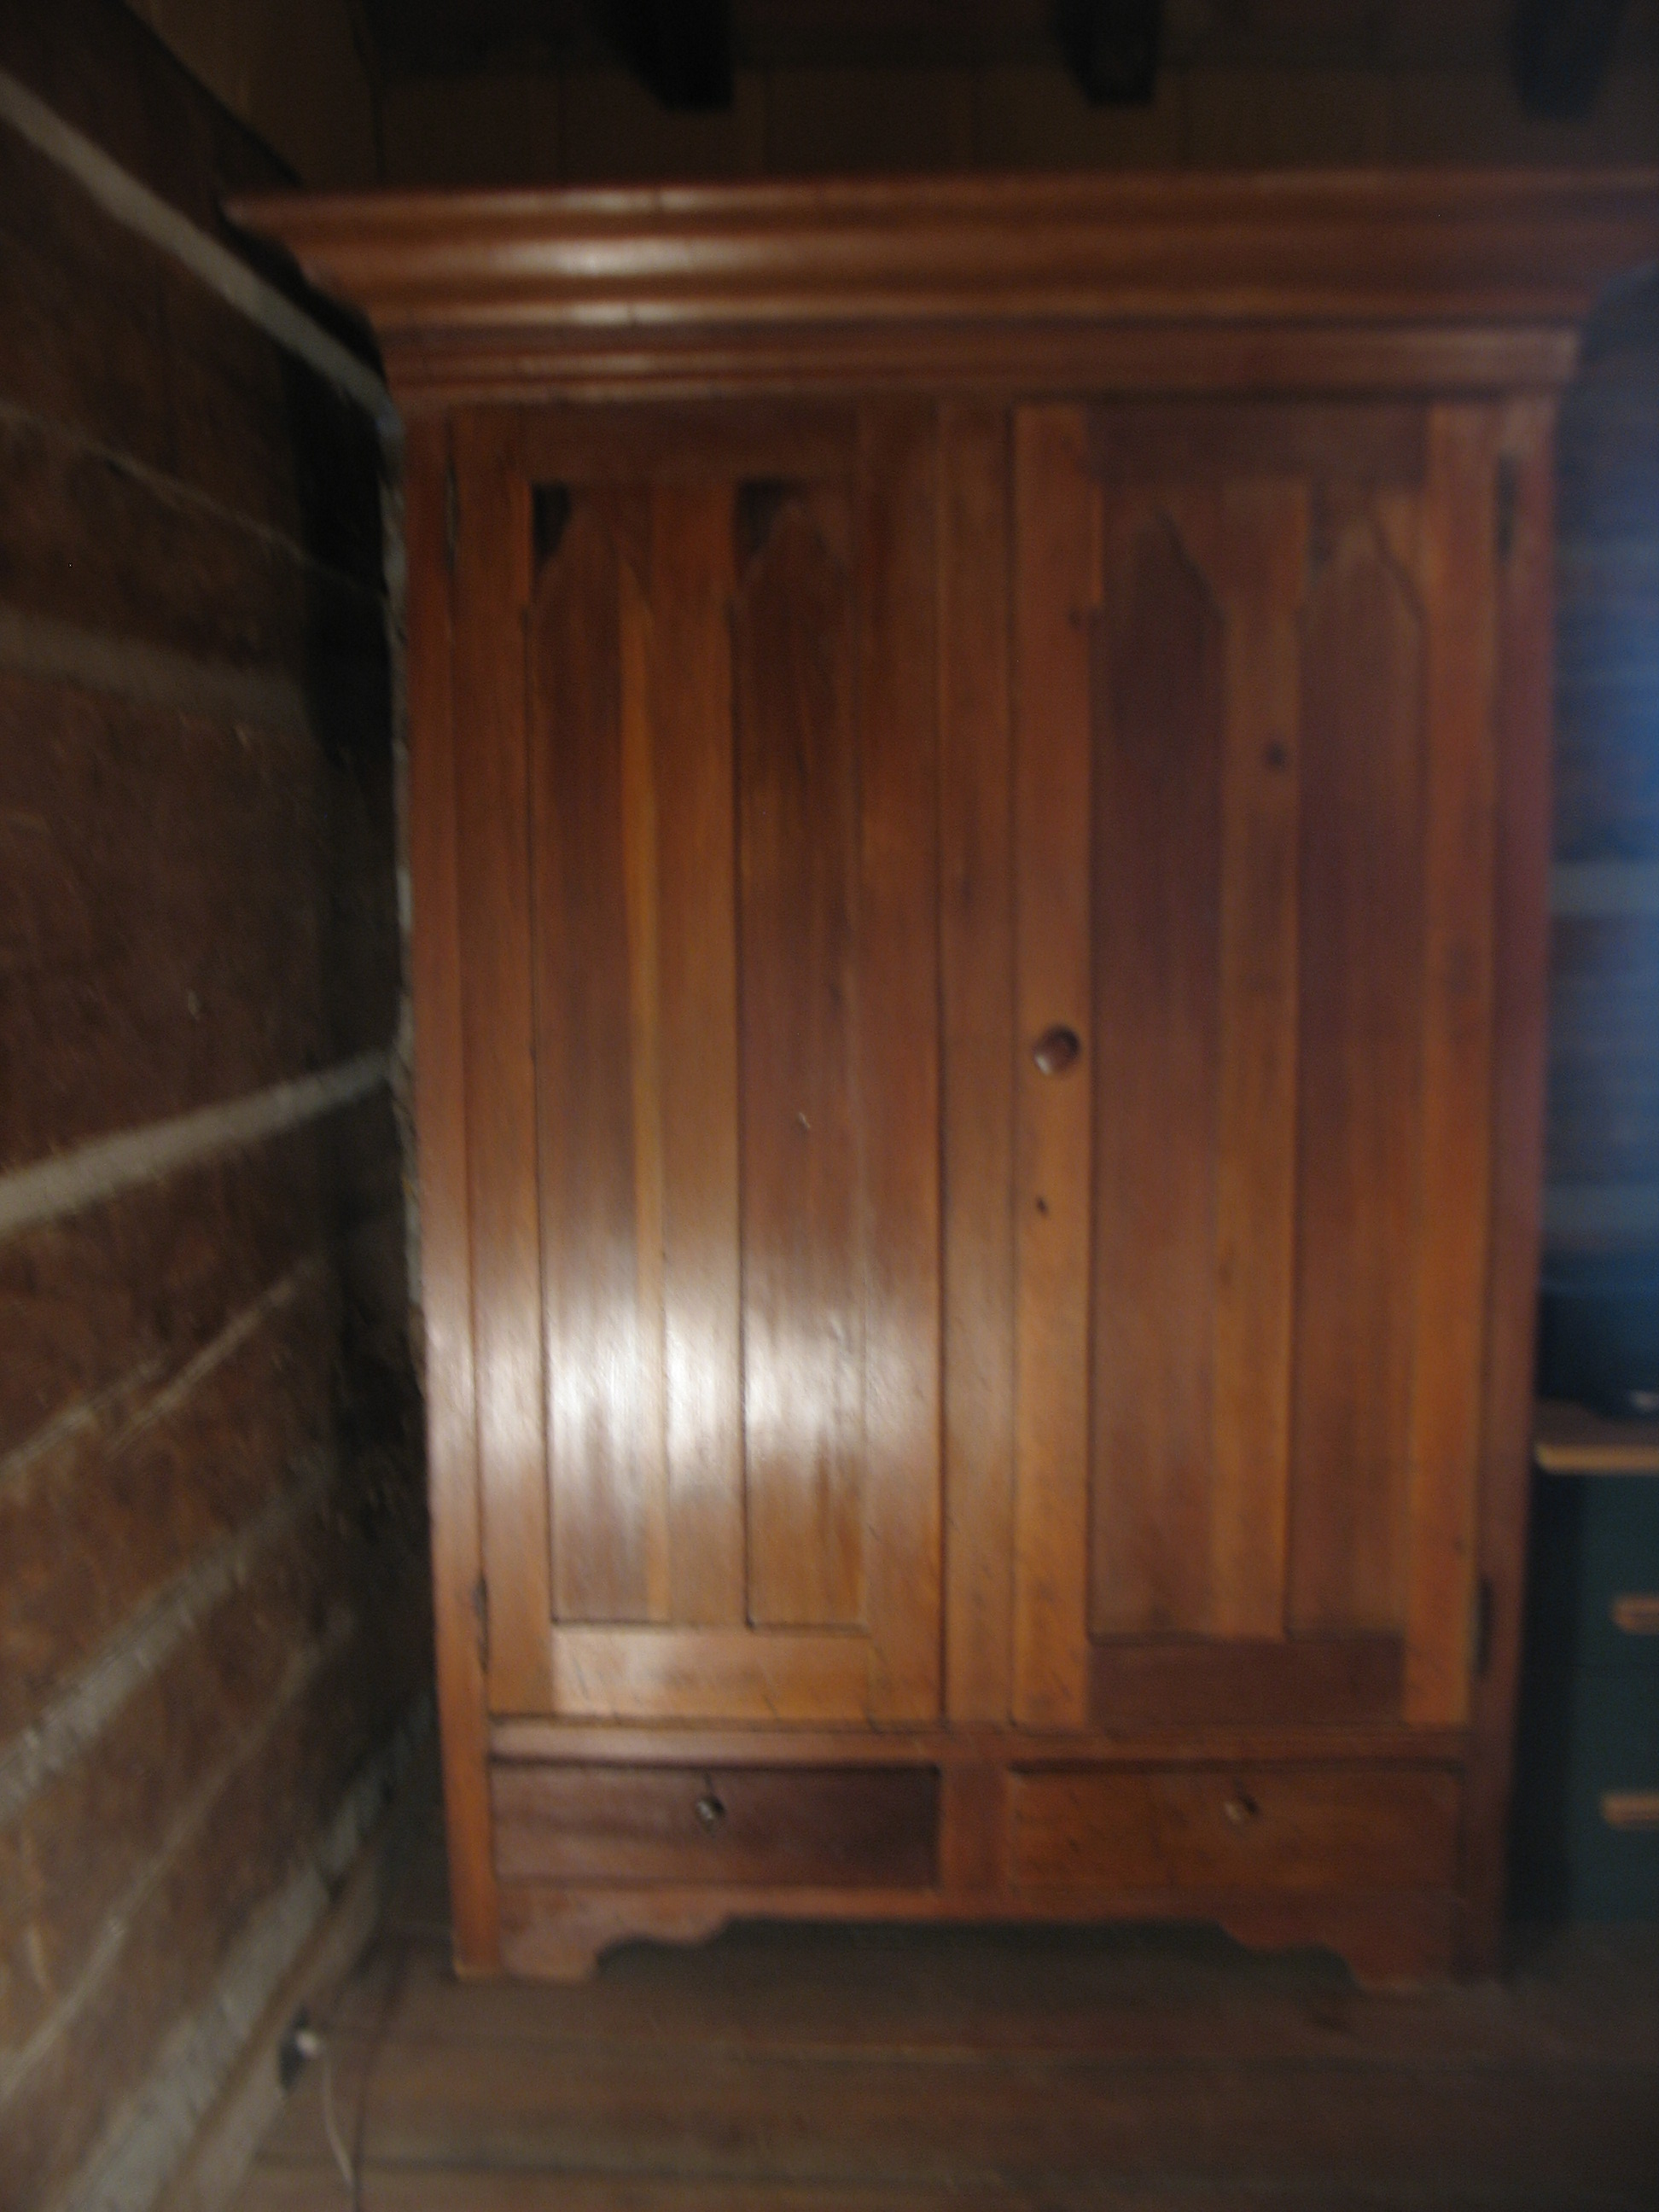 """This is a very special wardrobe, hand made in walnut, pegged together and has the largest crown molding seen for a wardrobe of this period. Overall Height 7' 3"""" X 54 inches wide for the body of the wardrobe. The crown is 5' 8"""" wide X 10 inches deep X 31"""" from back to front. There are 2 deep drawers at the bottom each 23 inches wide X 21 inches deep. Inside is 2 feet deep and 6 feet in height. There is a 23 inch walnut shelf at the top. All hardware is original to the piece. This is truly the best of the best in wardrobes."""